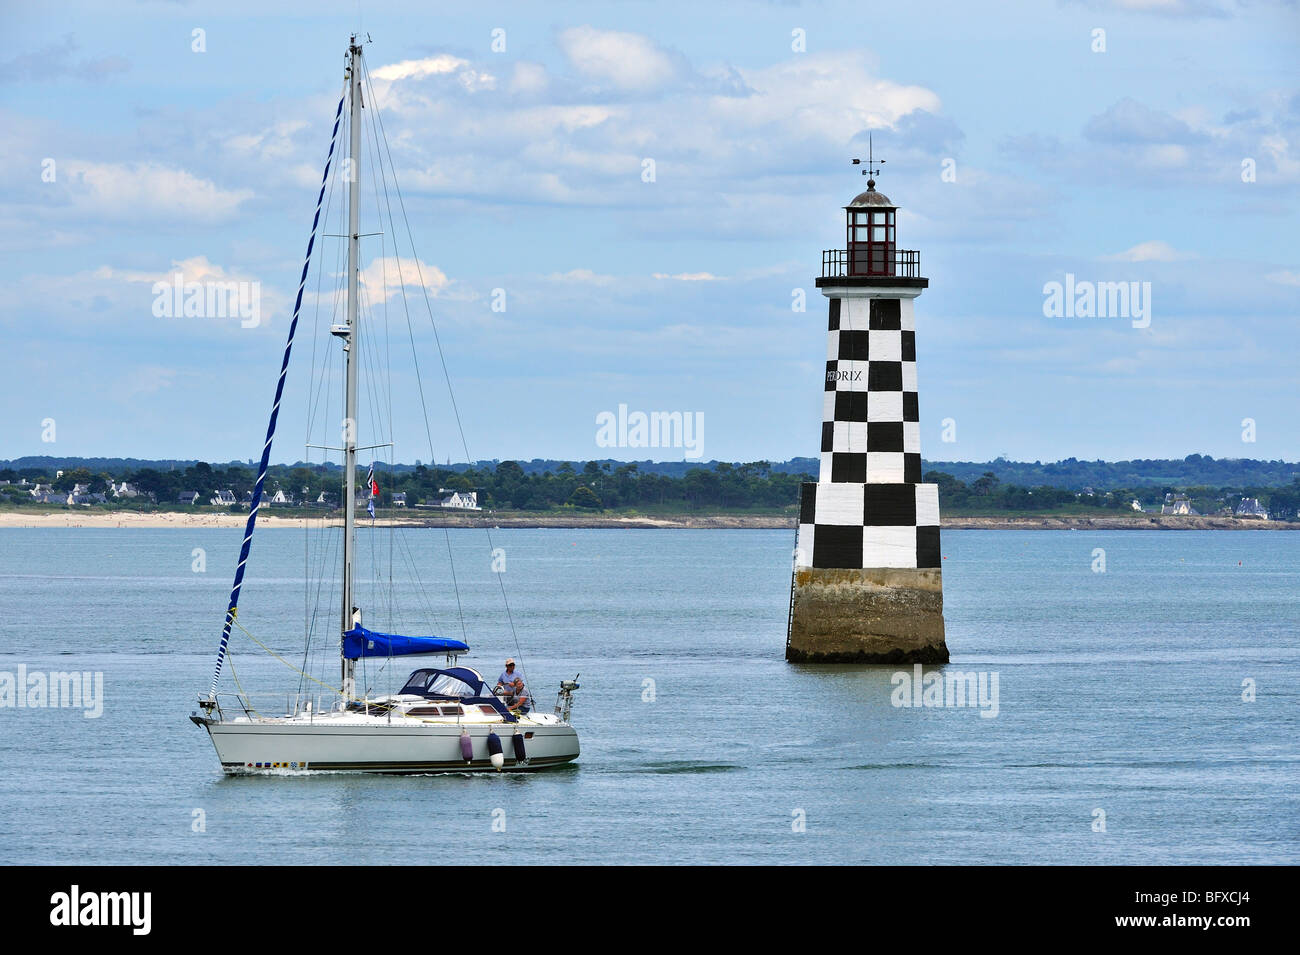 Sailing boat and the lighthouse Perdrix at Loctudy, Finistère, Brittany, France - Stock Image